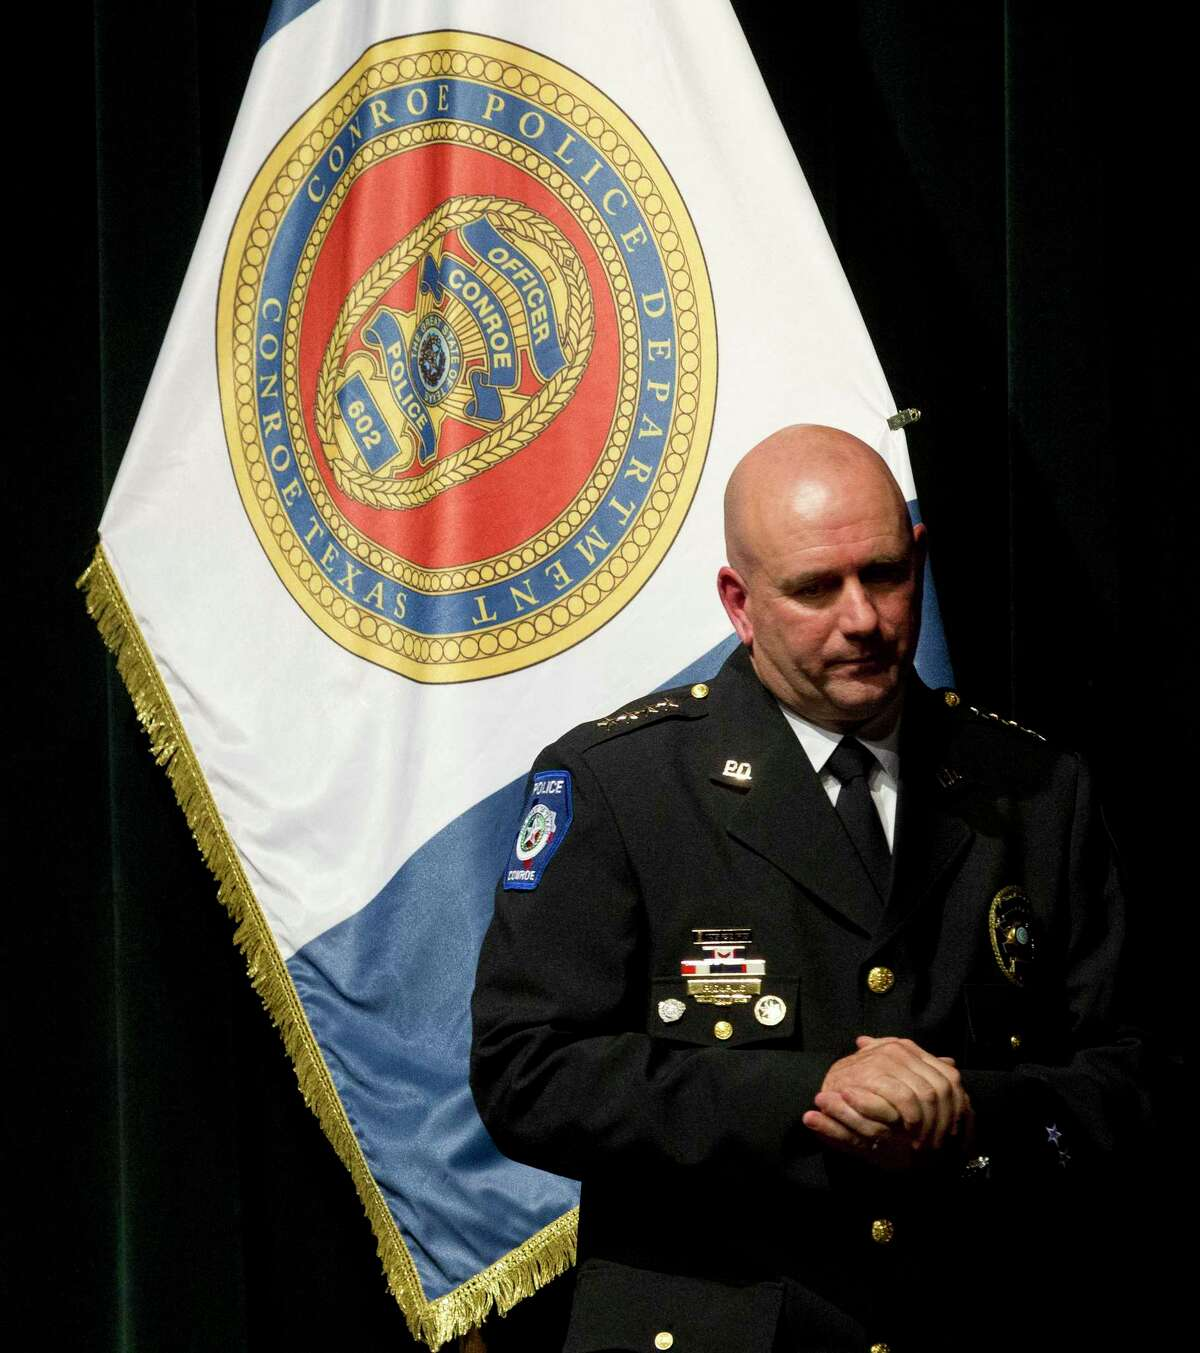 Conroe Police Chief Philip Dupuis is seen during a graduation ceremony for the Conroe Police Department at the Owen Theater Thursday, Feb. 16, 2017, in Conroe.